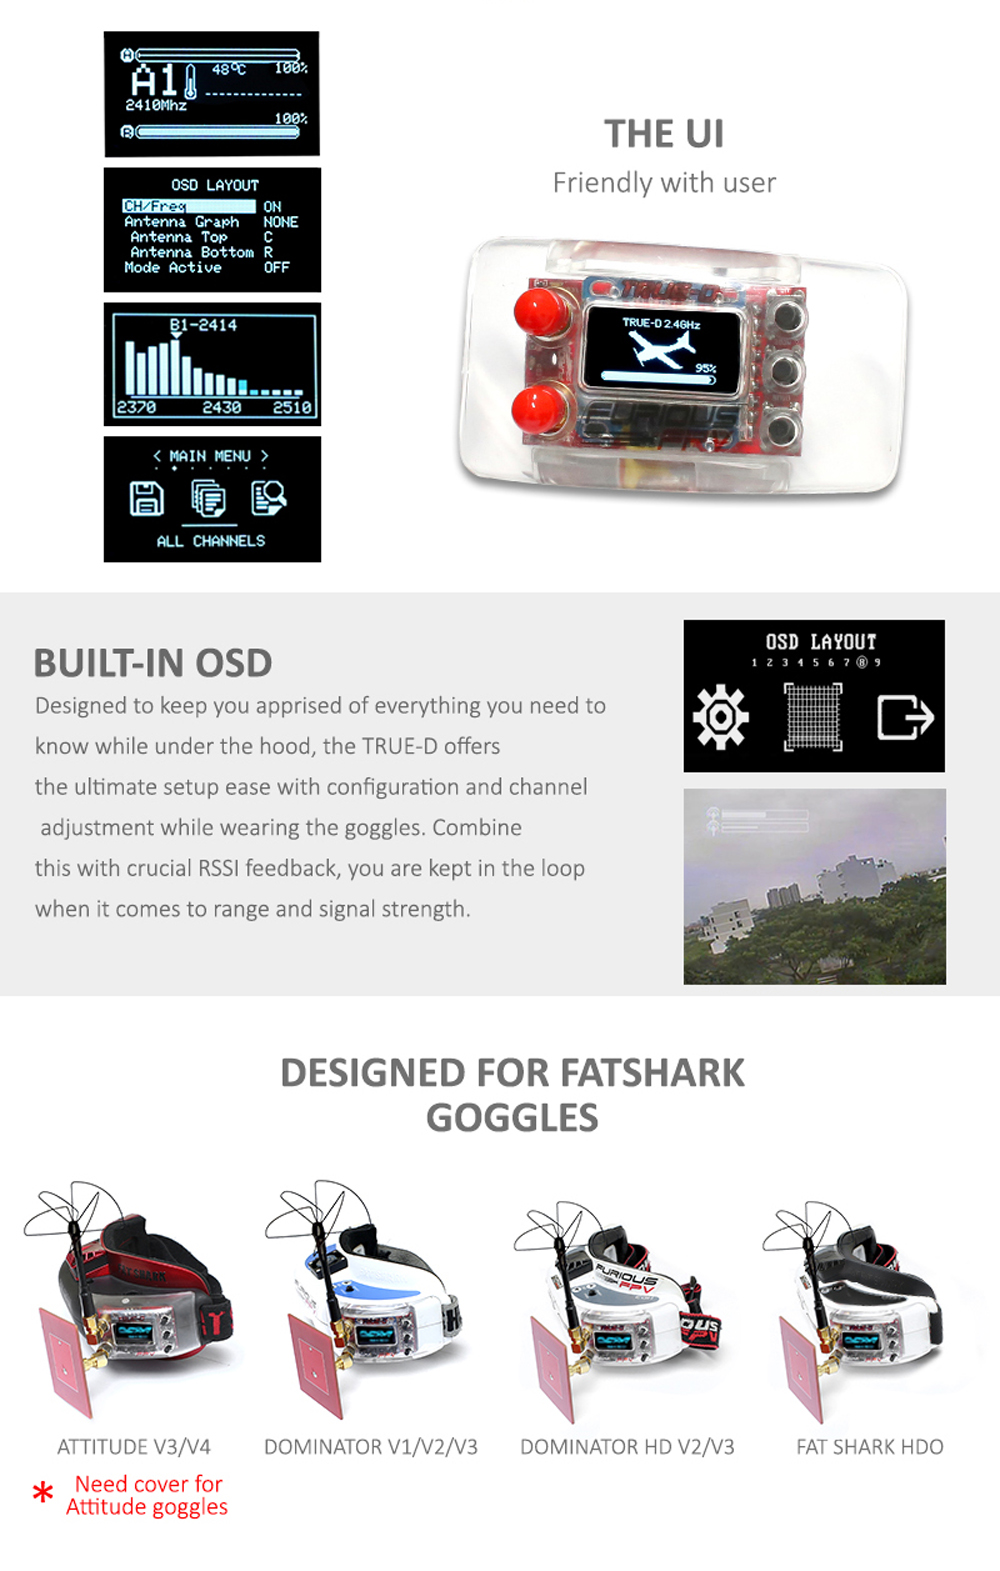 Furious True-D 2.4 GHz Diversity Receiver System Clarity Redefined for Fatshark Goggles - Photo: 2